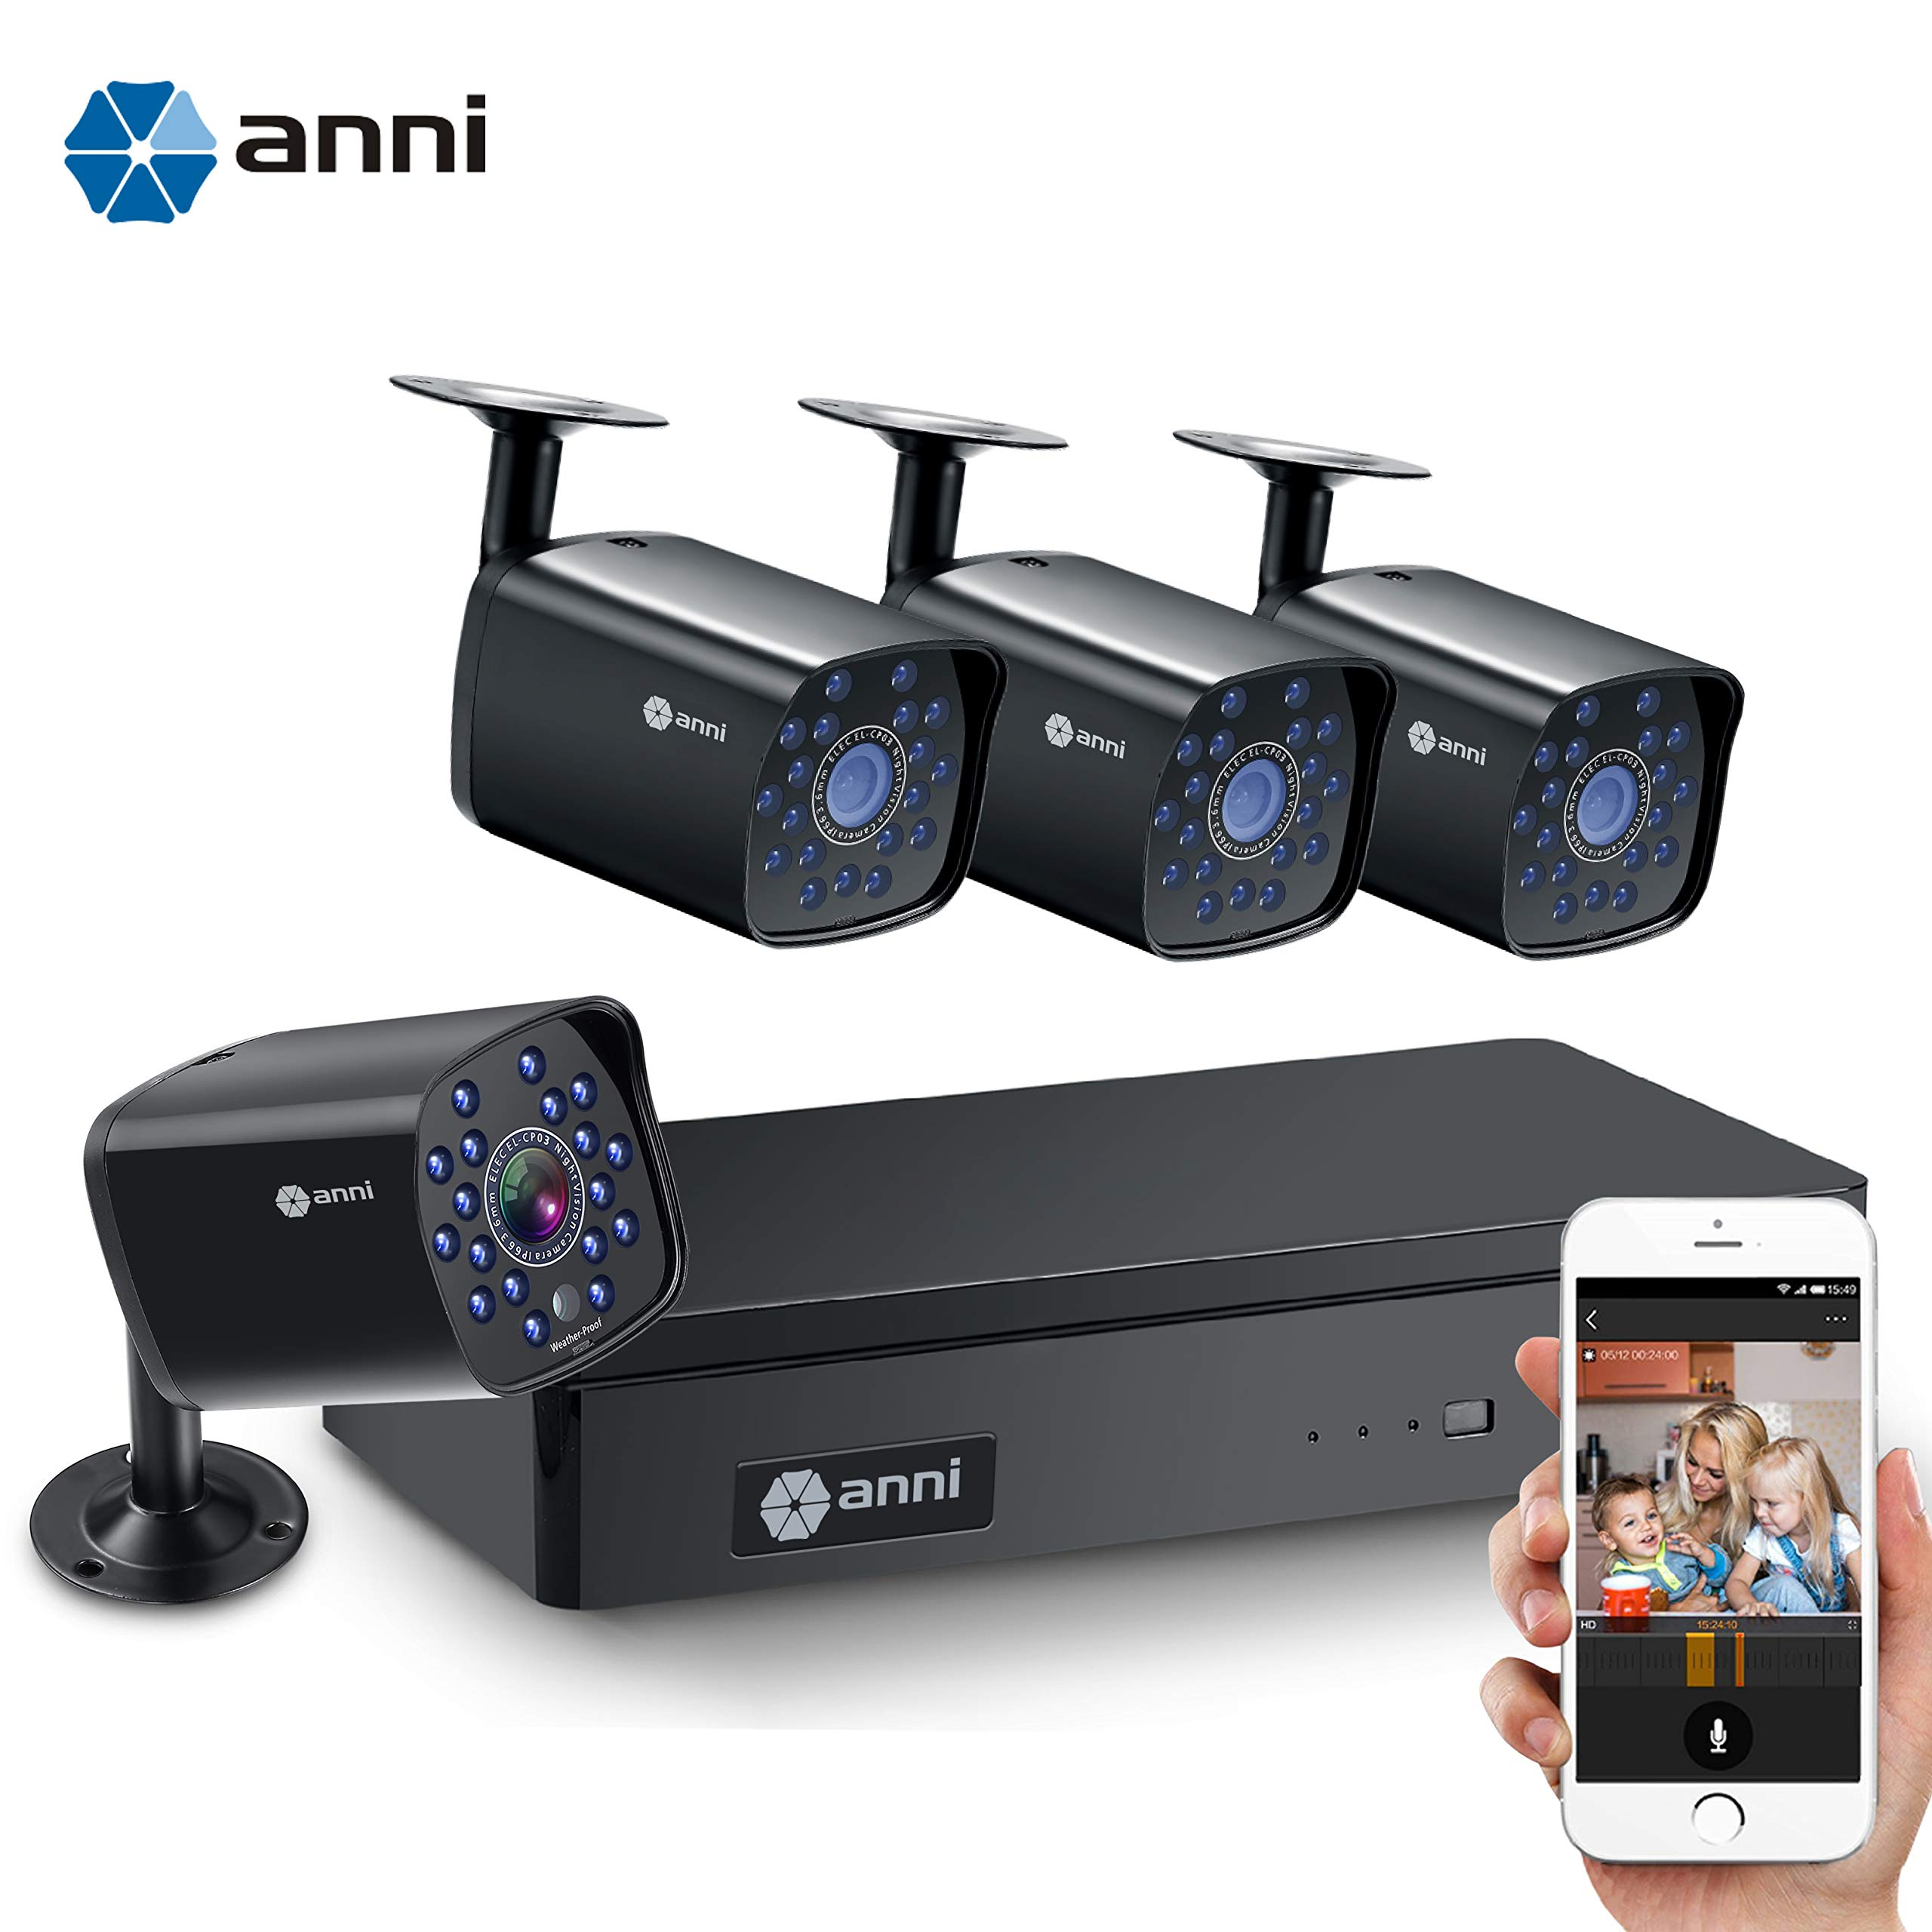 4 Channel H.264+Home Security Cameras System Wired, 4pcs HD 1080N 1.0MP Surveillance Bullet Cameras with CCTV DVR Video Recorder, IP65 Weatherproof for Indoor Outdoor use, Motion Alert Remote Access by anni